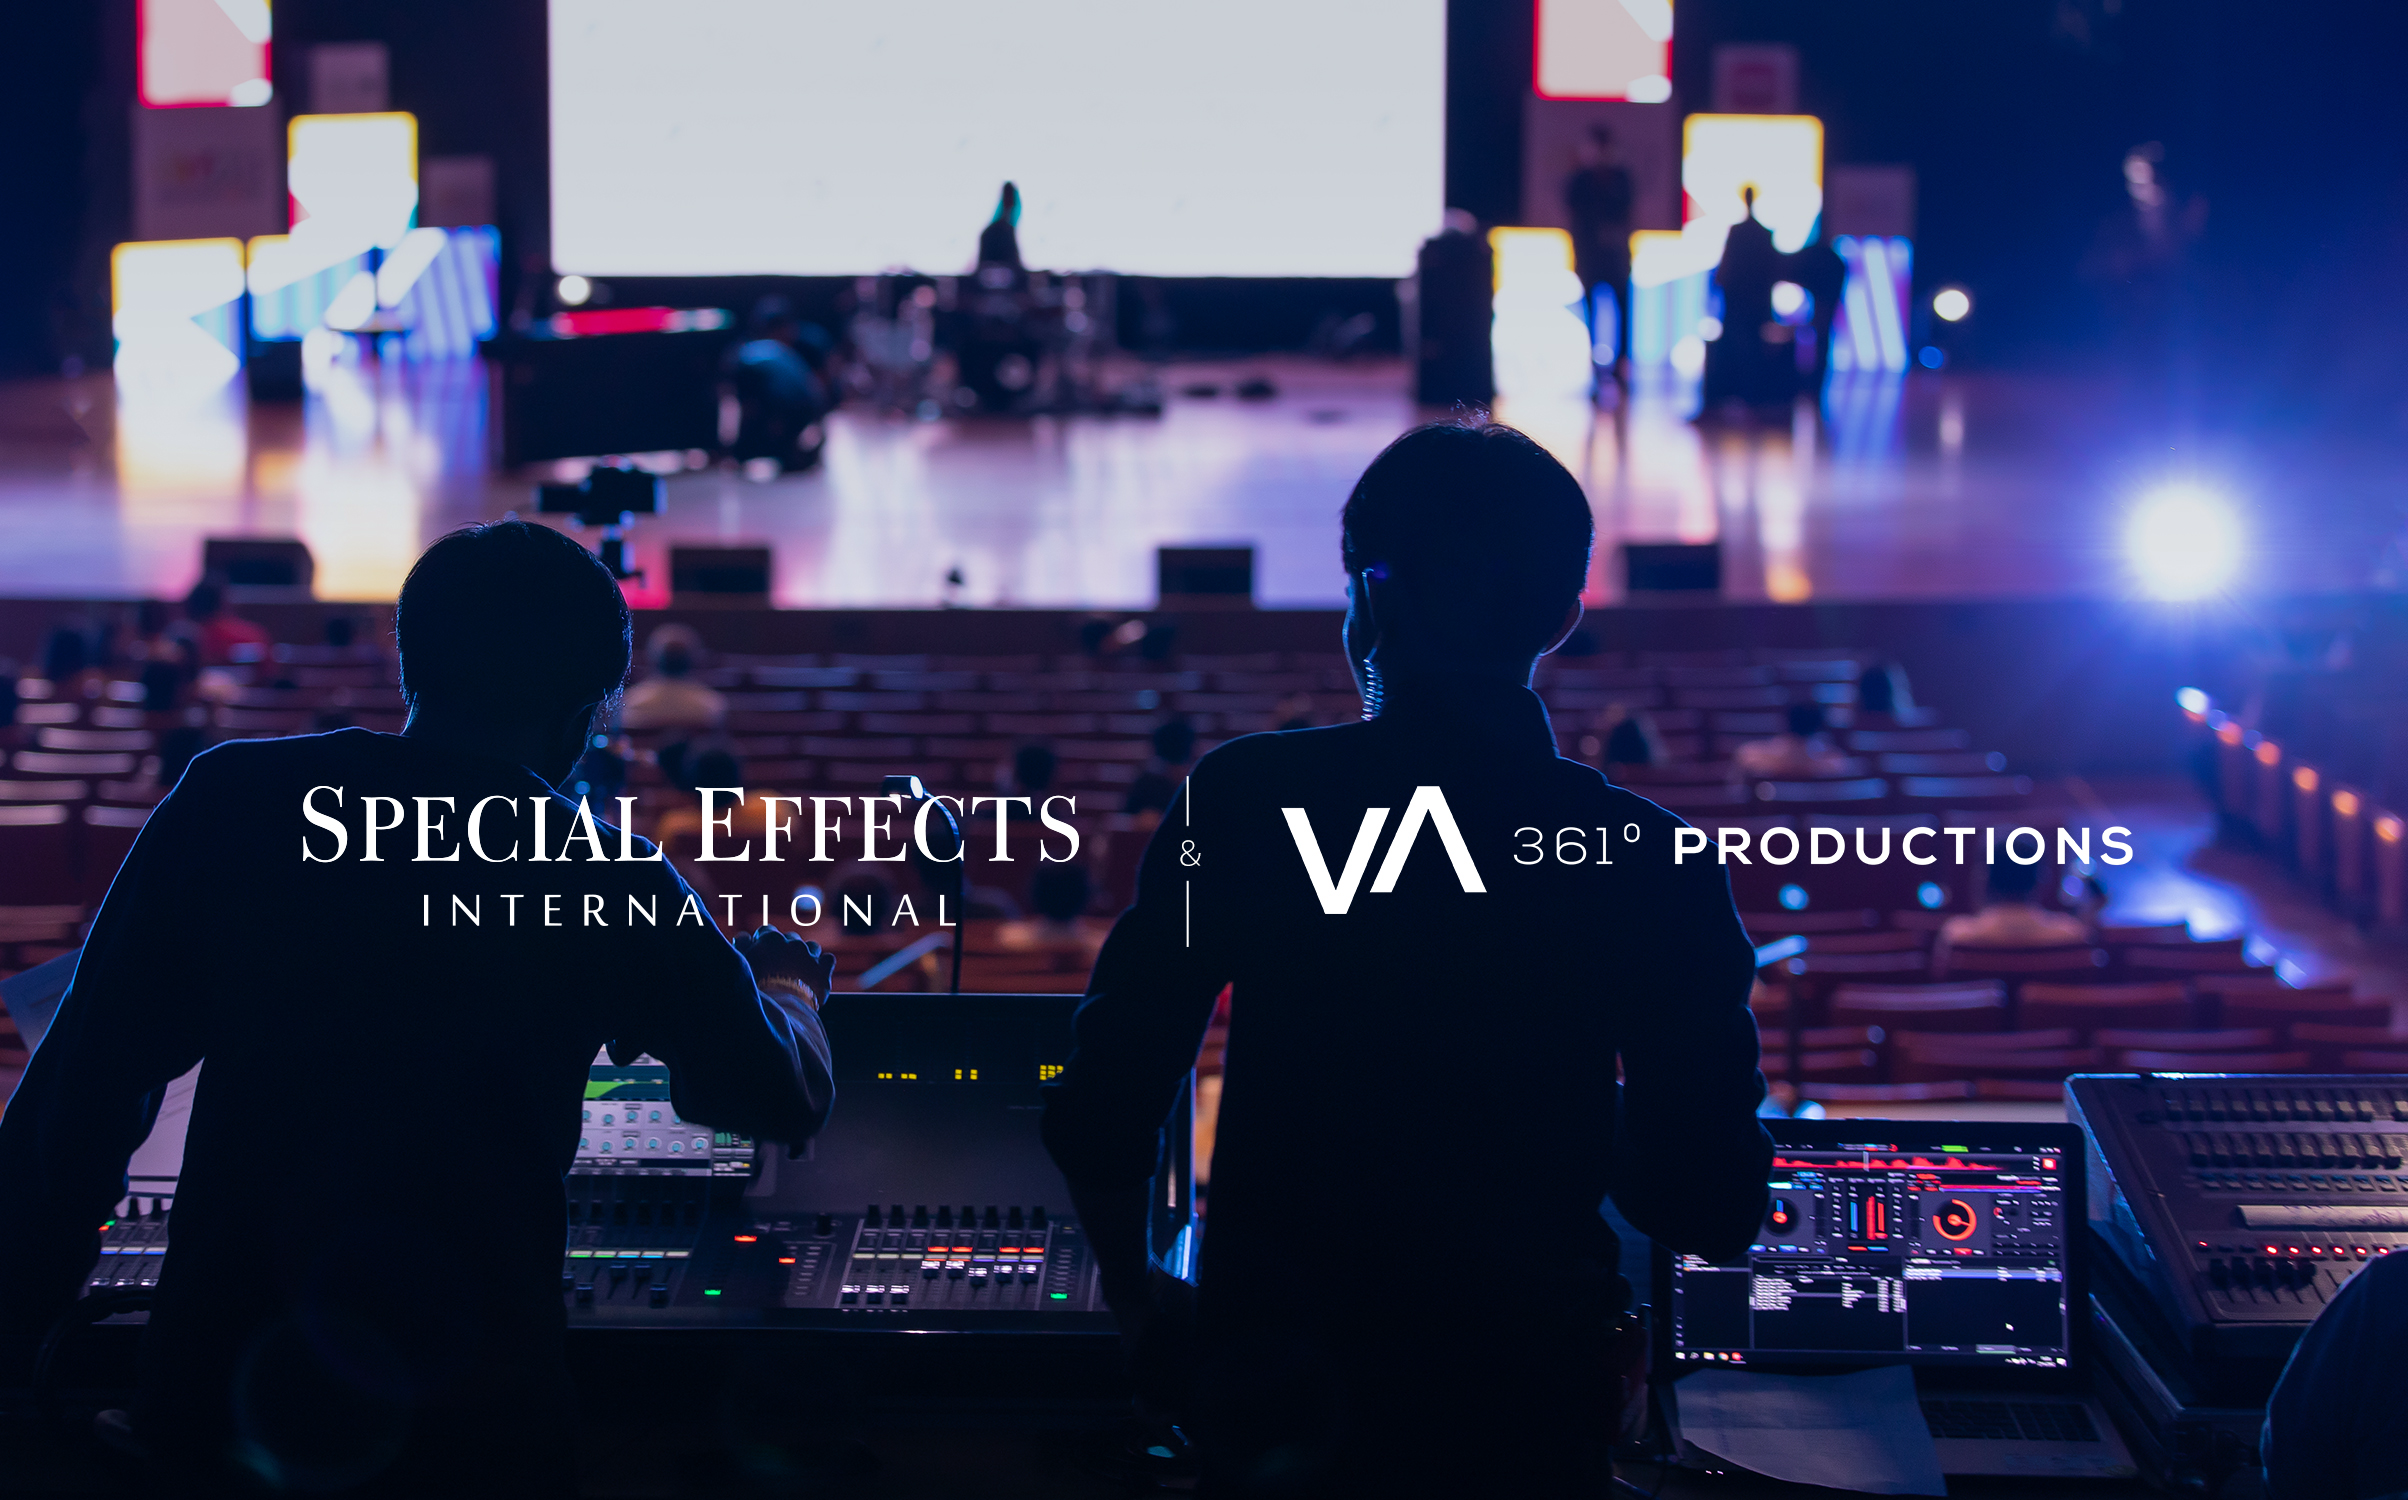 Special Effects acquires stake in Spanish event production firm